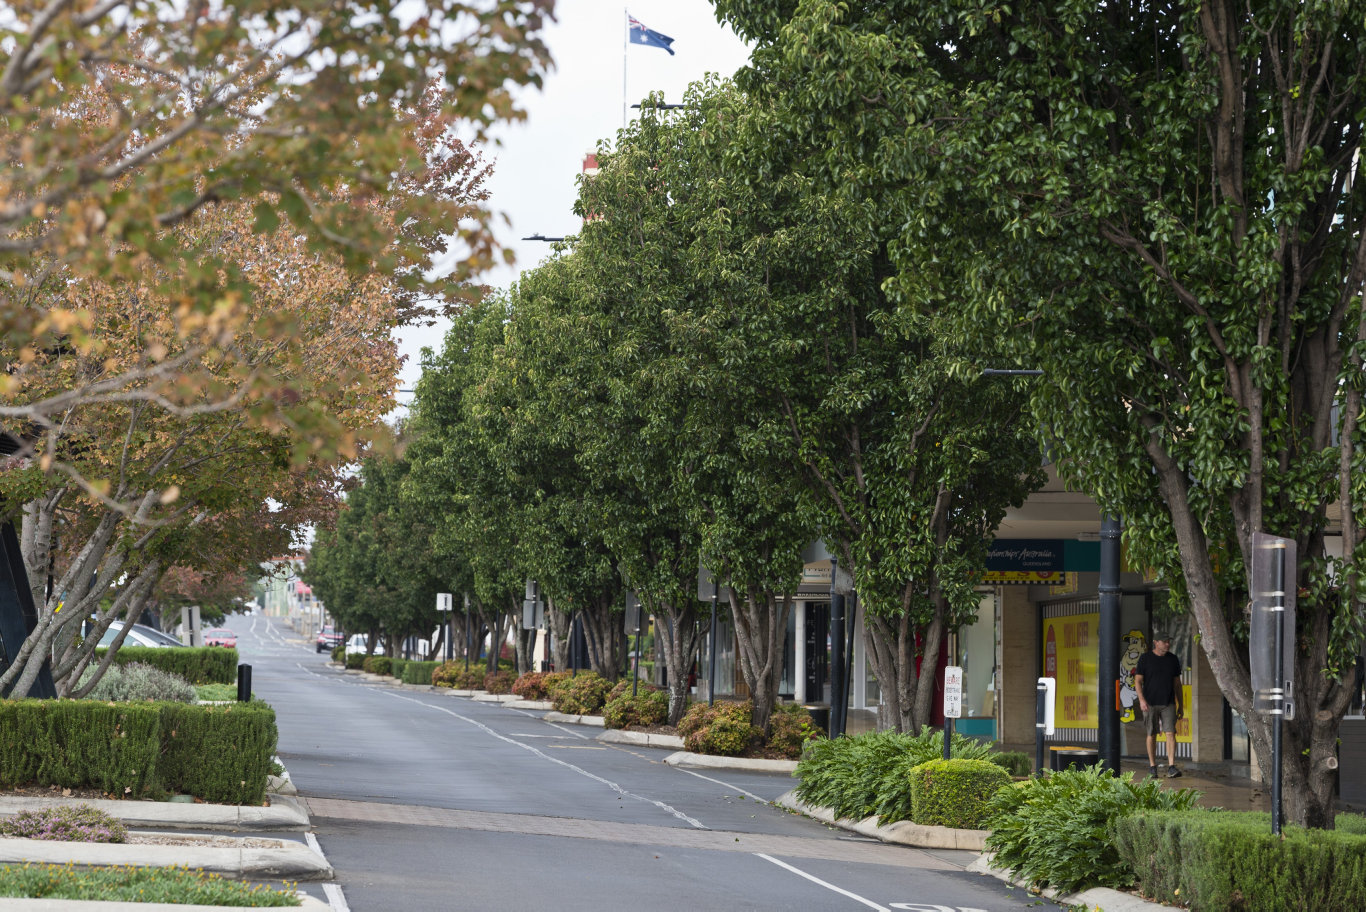 Ruthven St in the Toowoomba CBD is quiet as travel and stay at home restrictions of the COVID-19 coronavirus pandemic are felt, Friday, April 10, 2020. Picture: Kevin Farmer